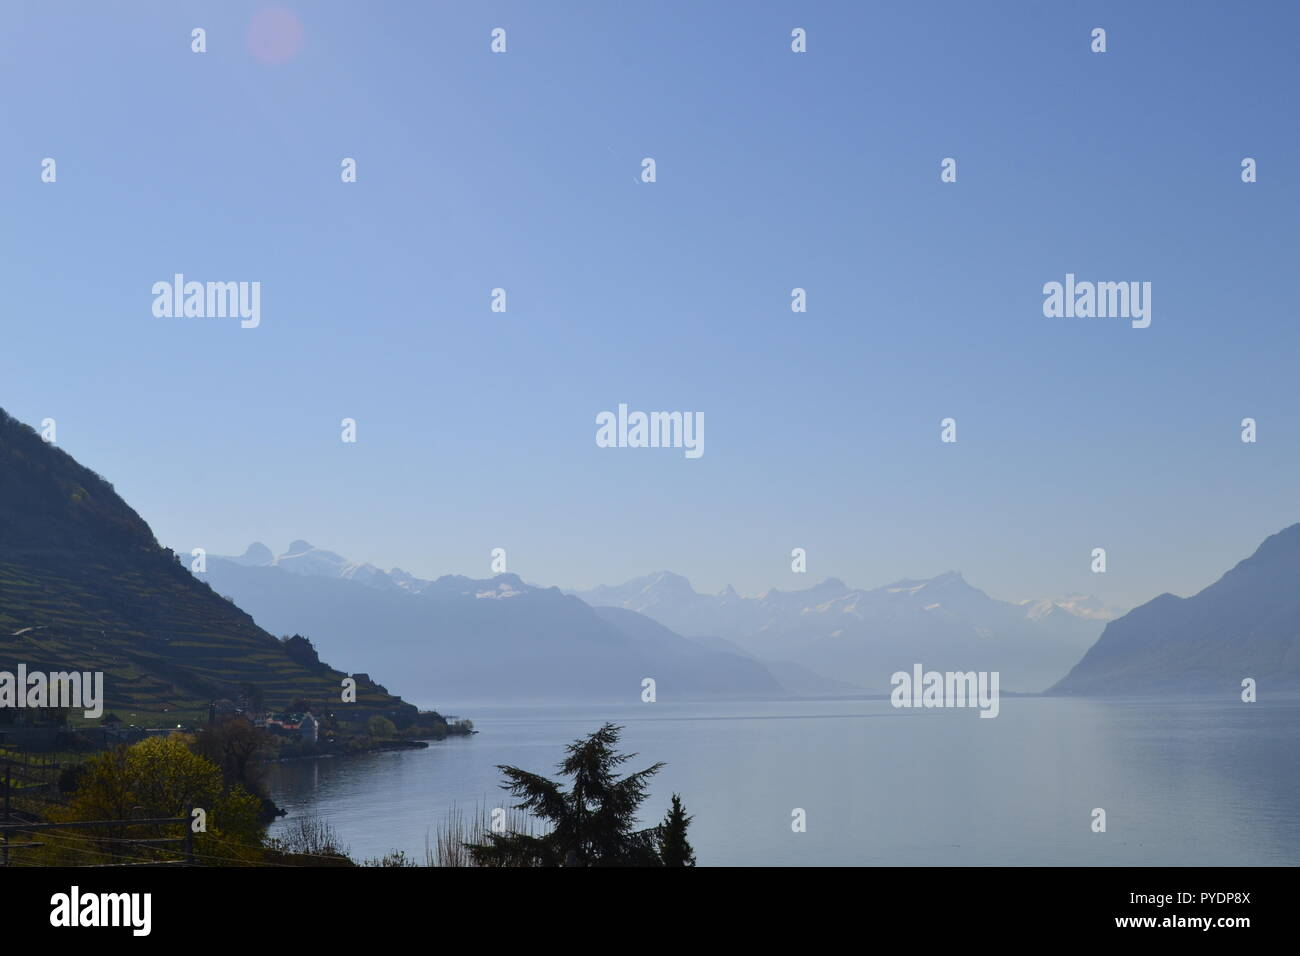 View from near Epesses village, Vaud, looking east down Lake Geneva to Montreux and the Pennine Alps. - Stock Image